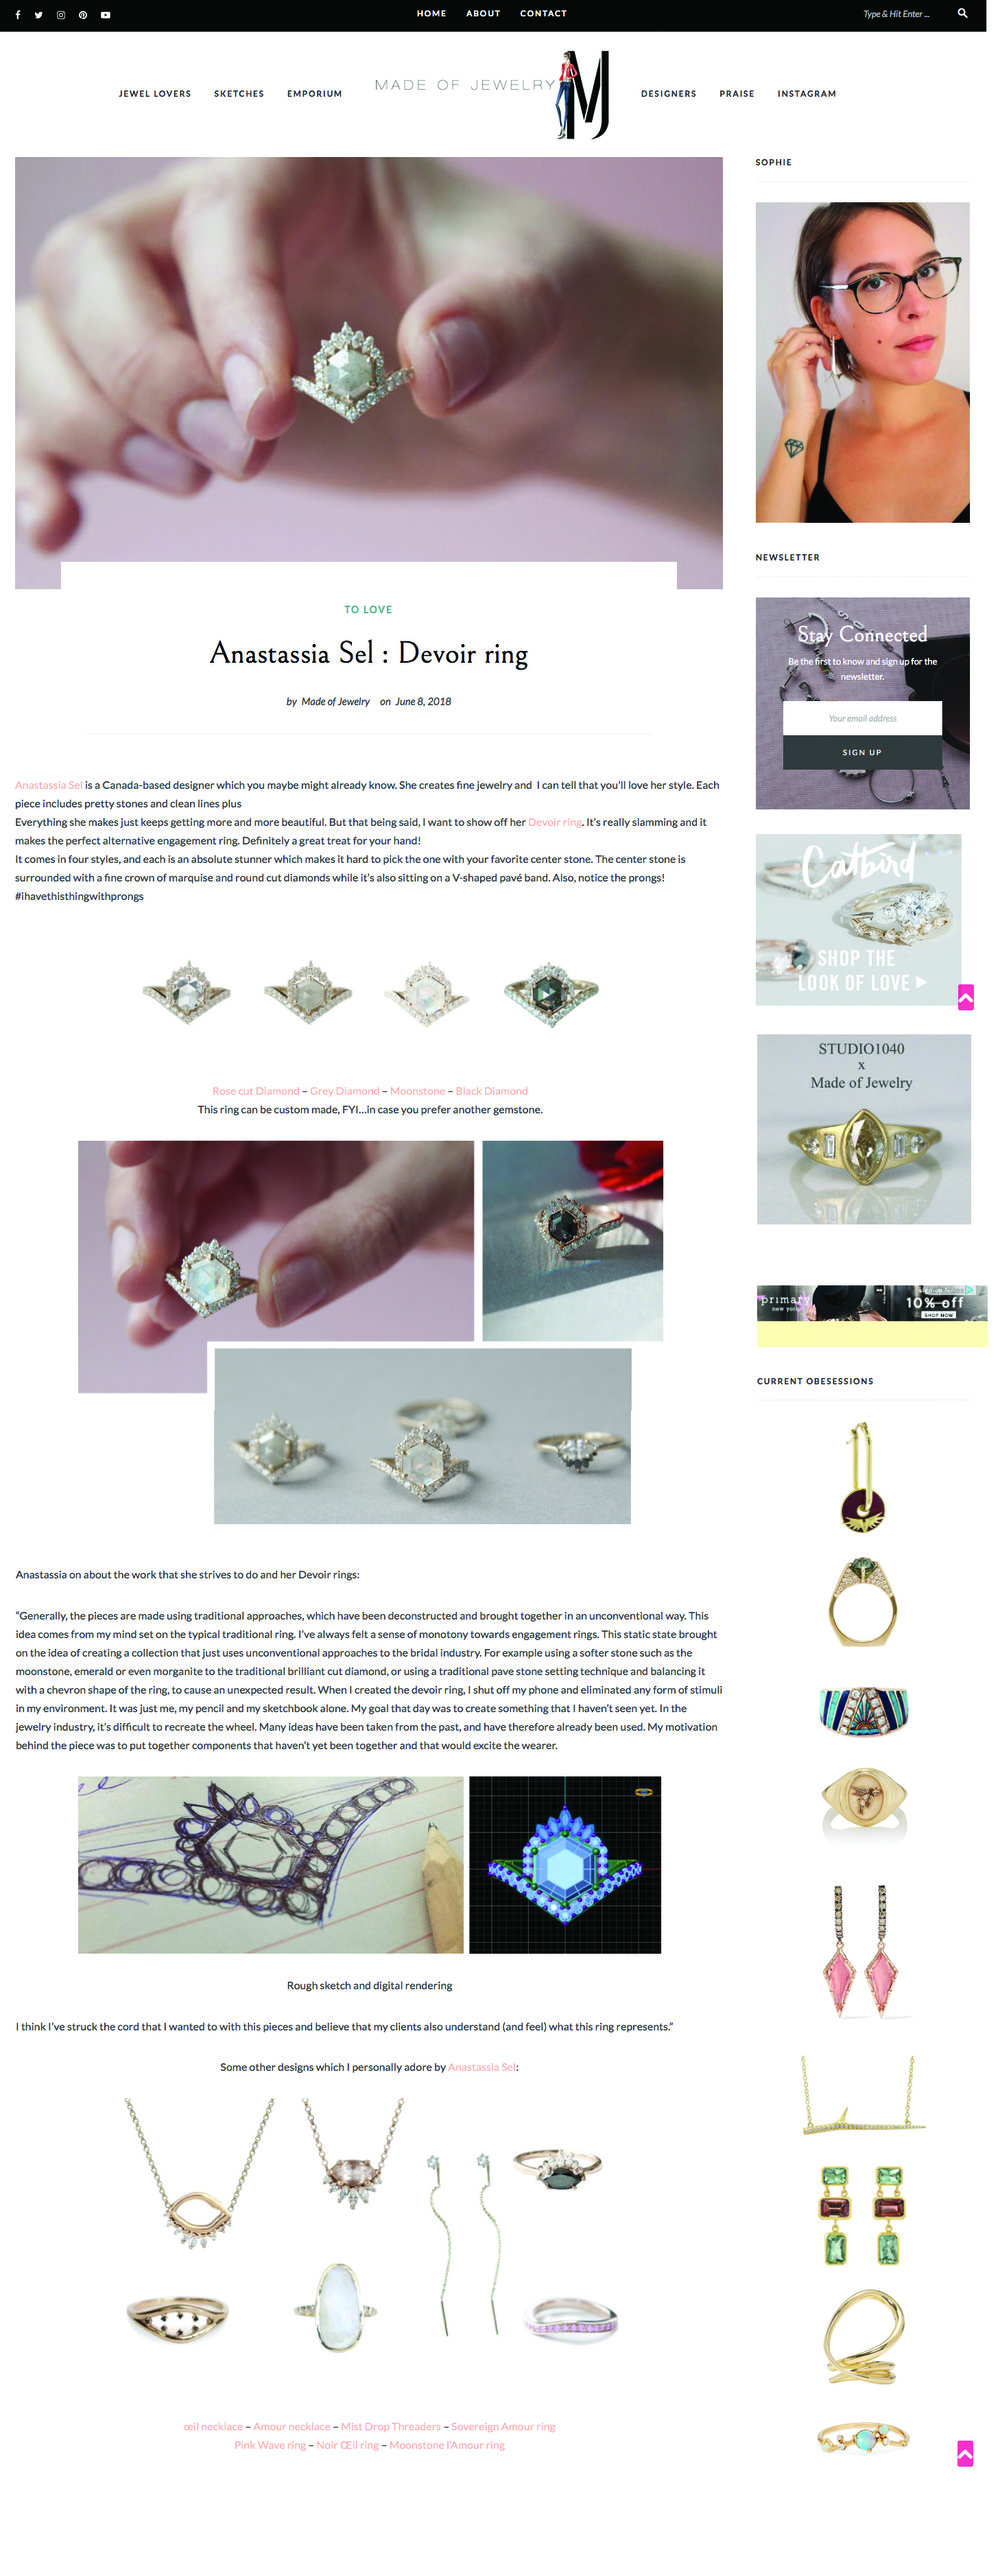 Anastassia Sel Jewlery - Made of Jewelry Blog feature.jpg